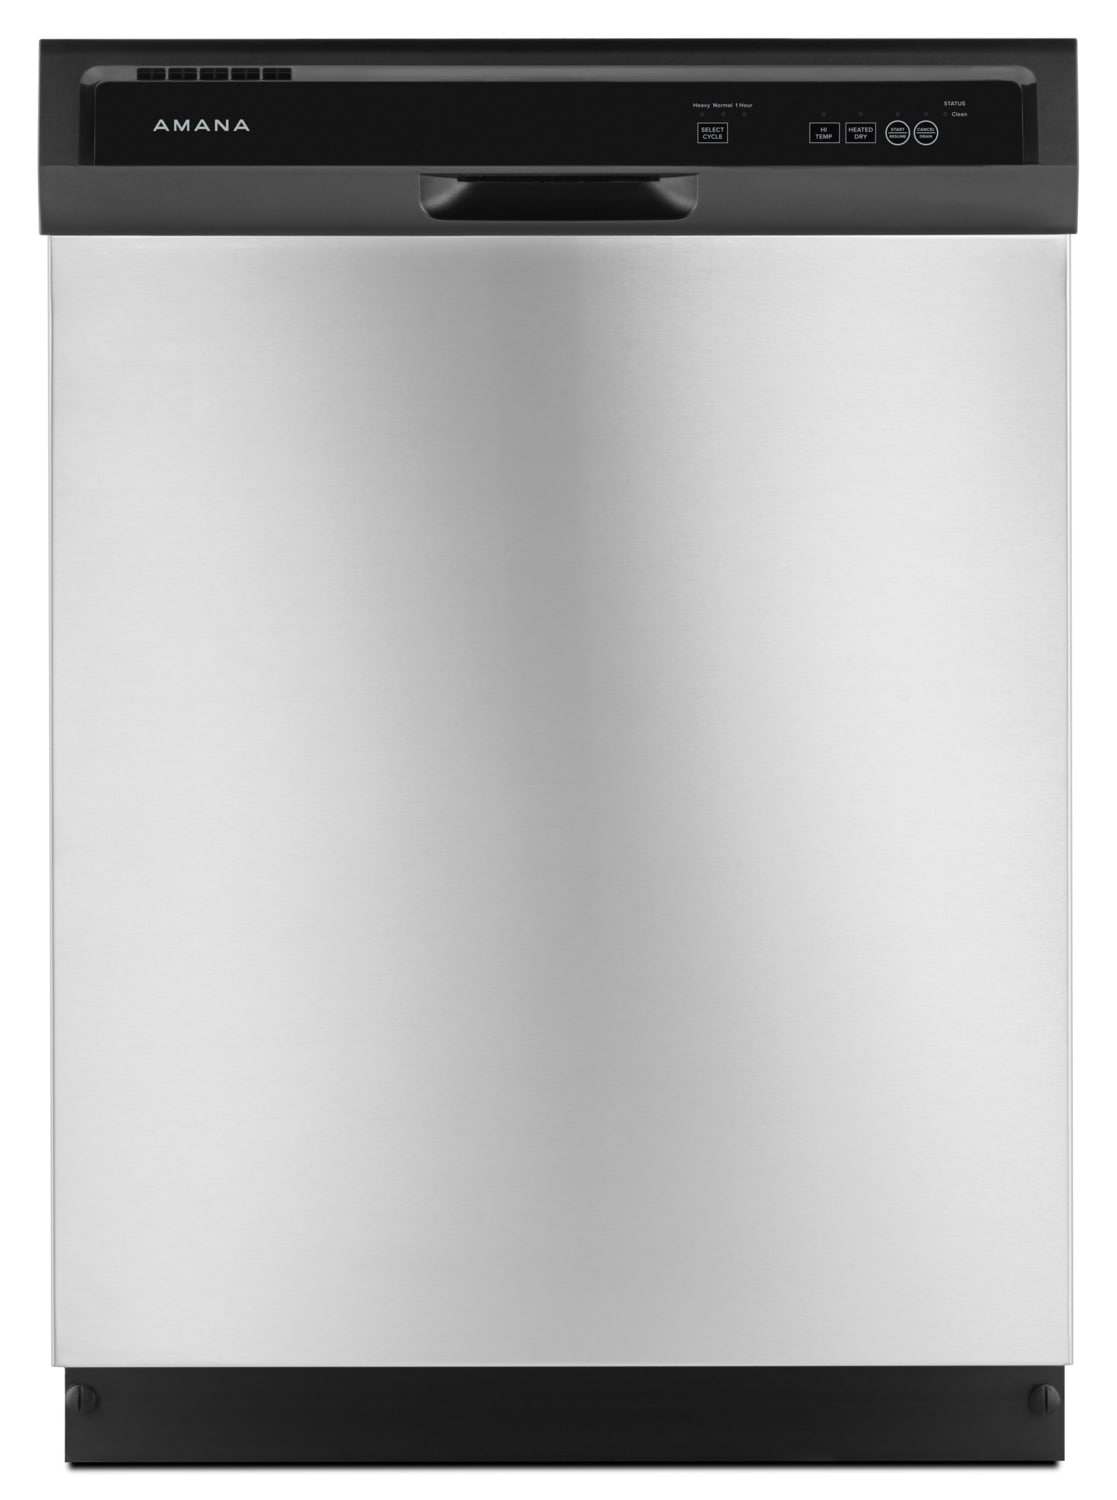 Amana Built-In Dishwasher with Triple Filter Wash System – ADB1300AFS